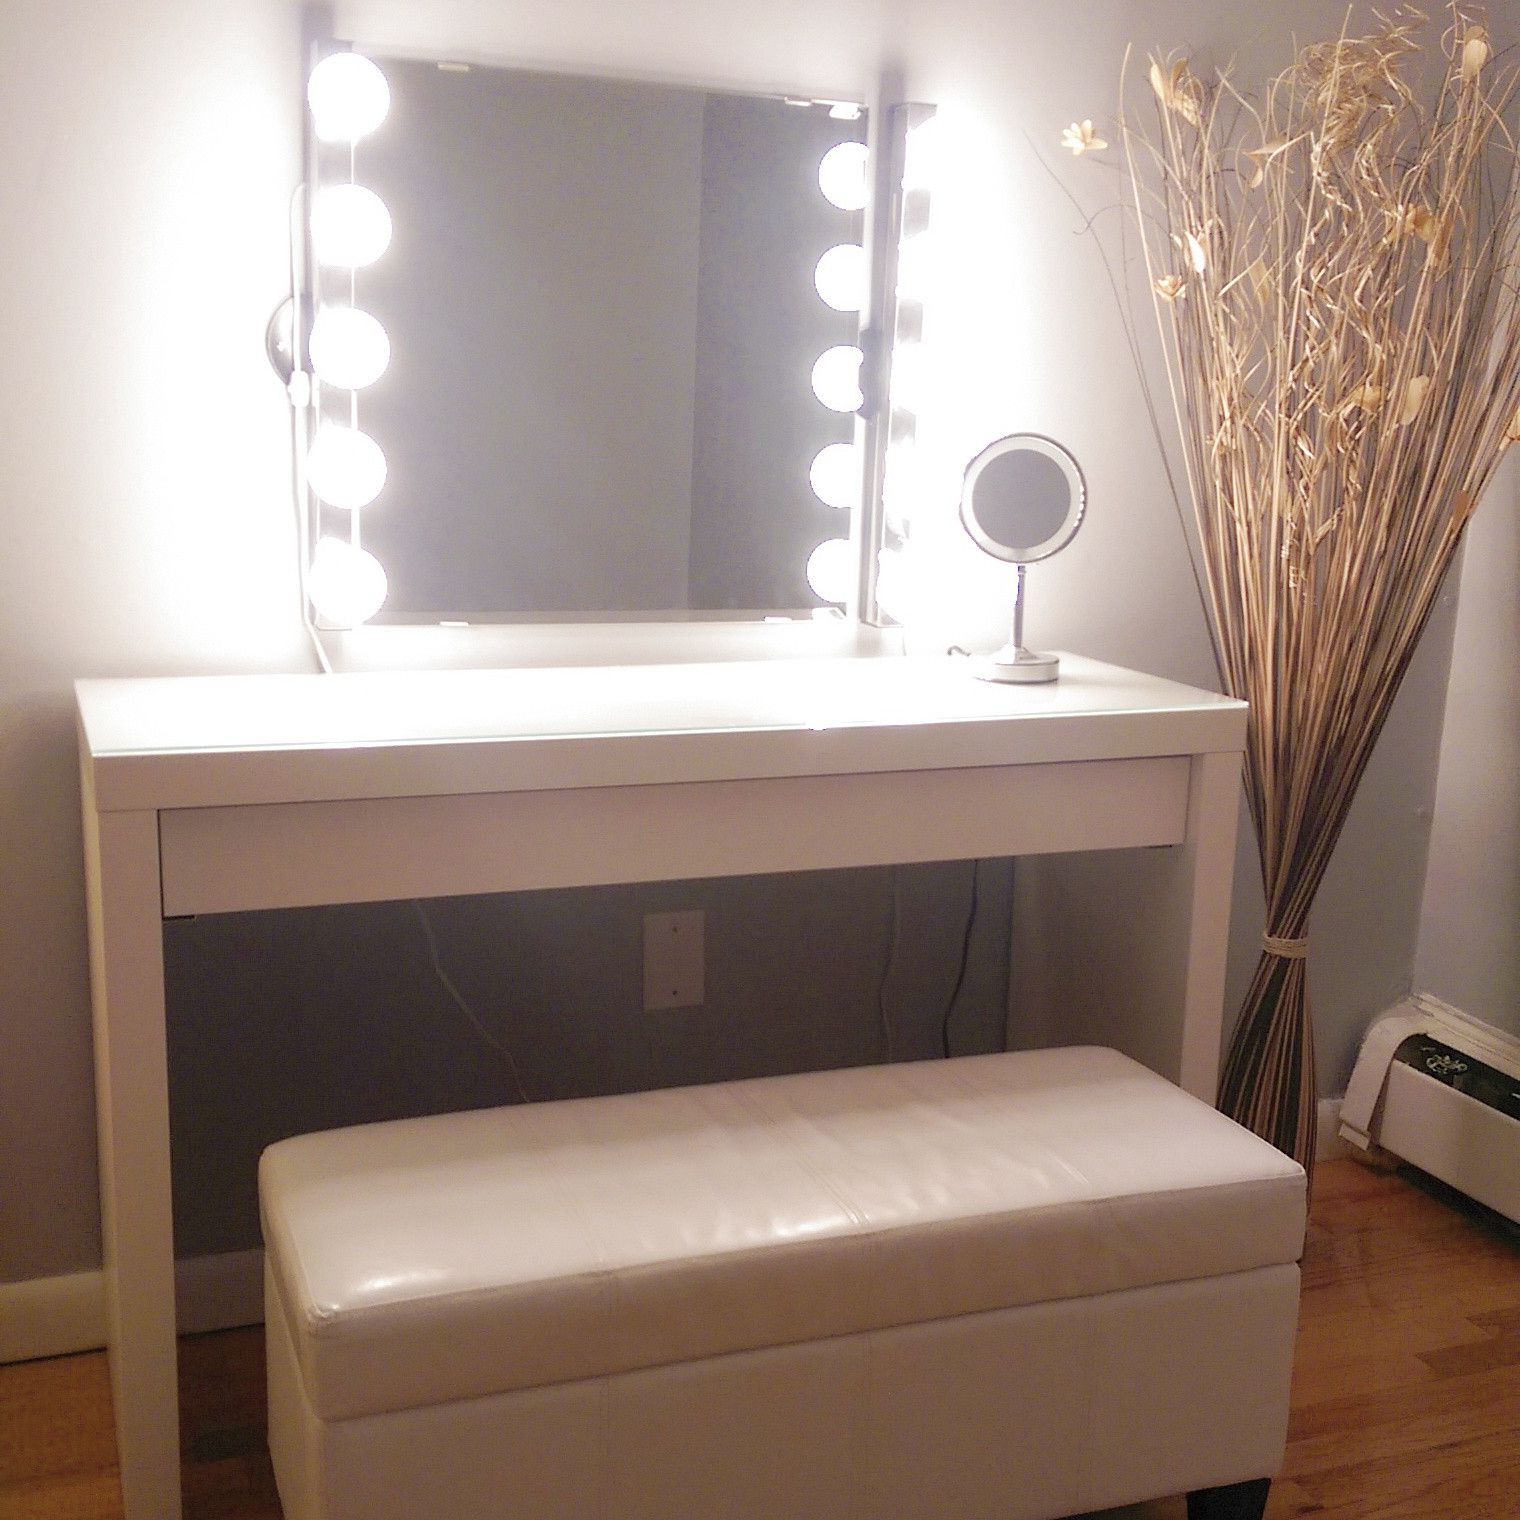 Newest Love The Bench, Wall Mirror Is Kolja Mirror From Ikea Regarding Wall Mirrors With Light (View 7 of 20)